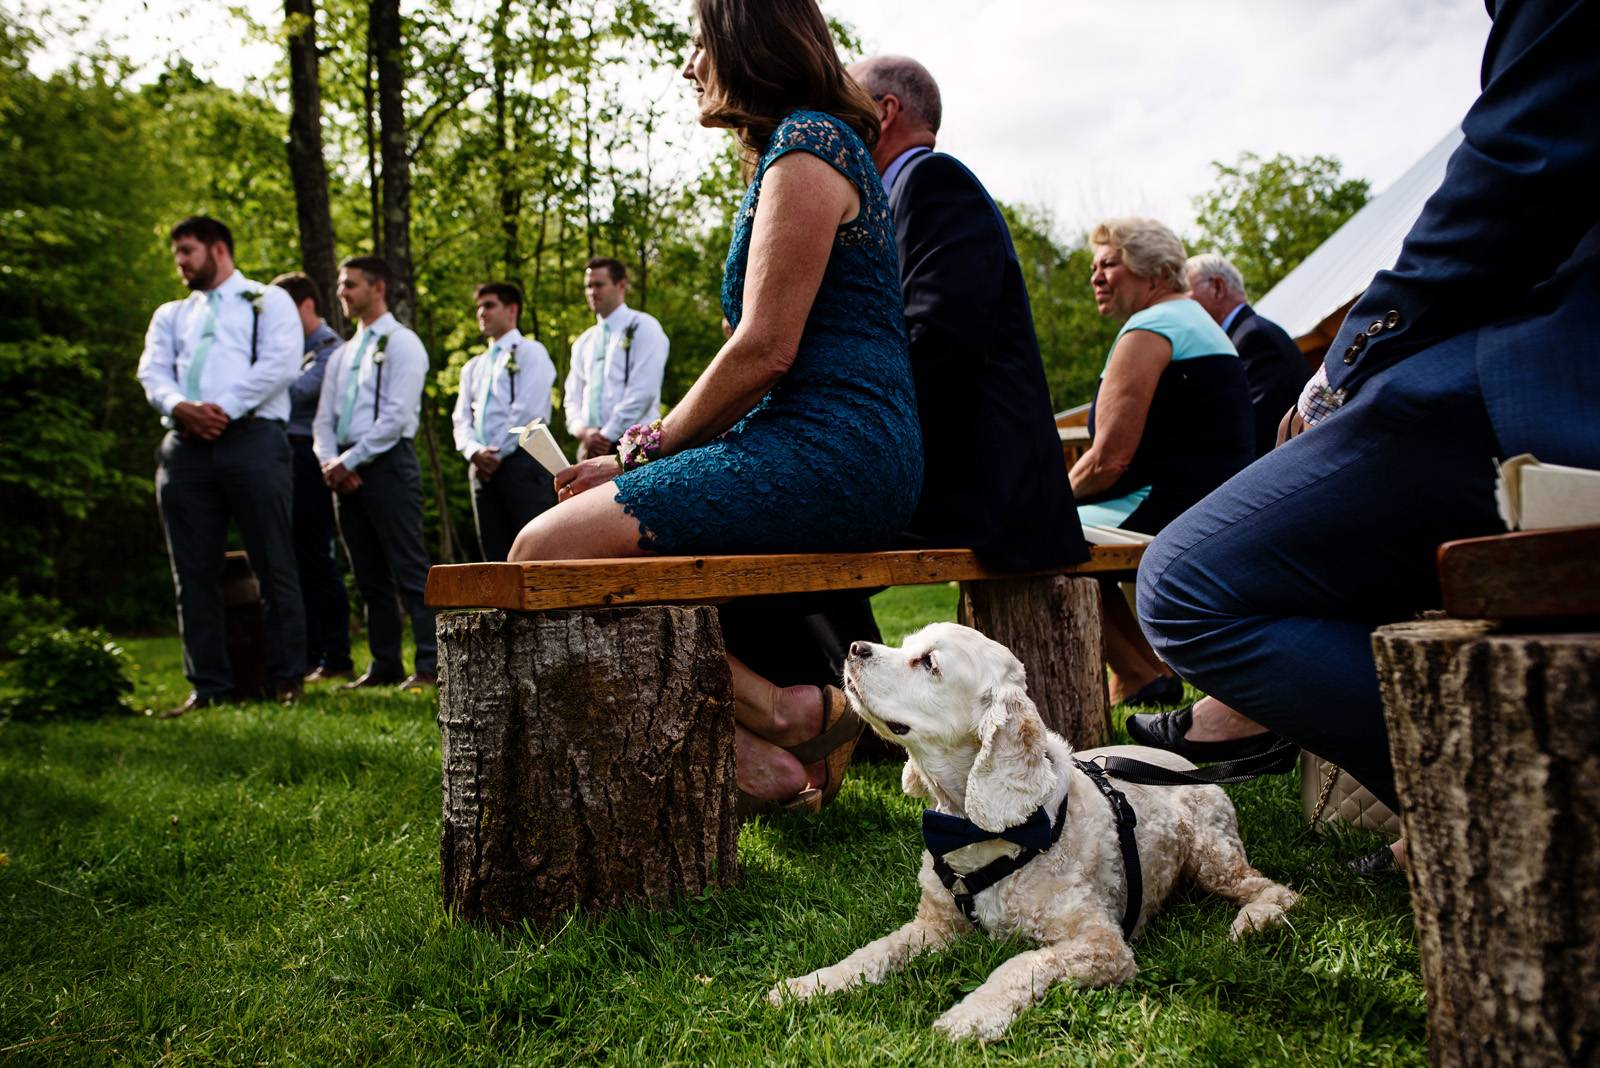 Dog lies in grass during wedding ceremony